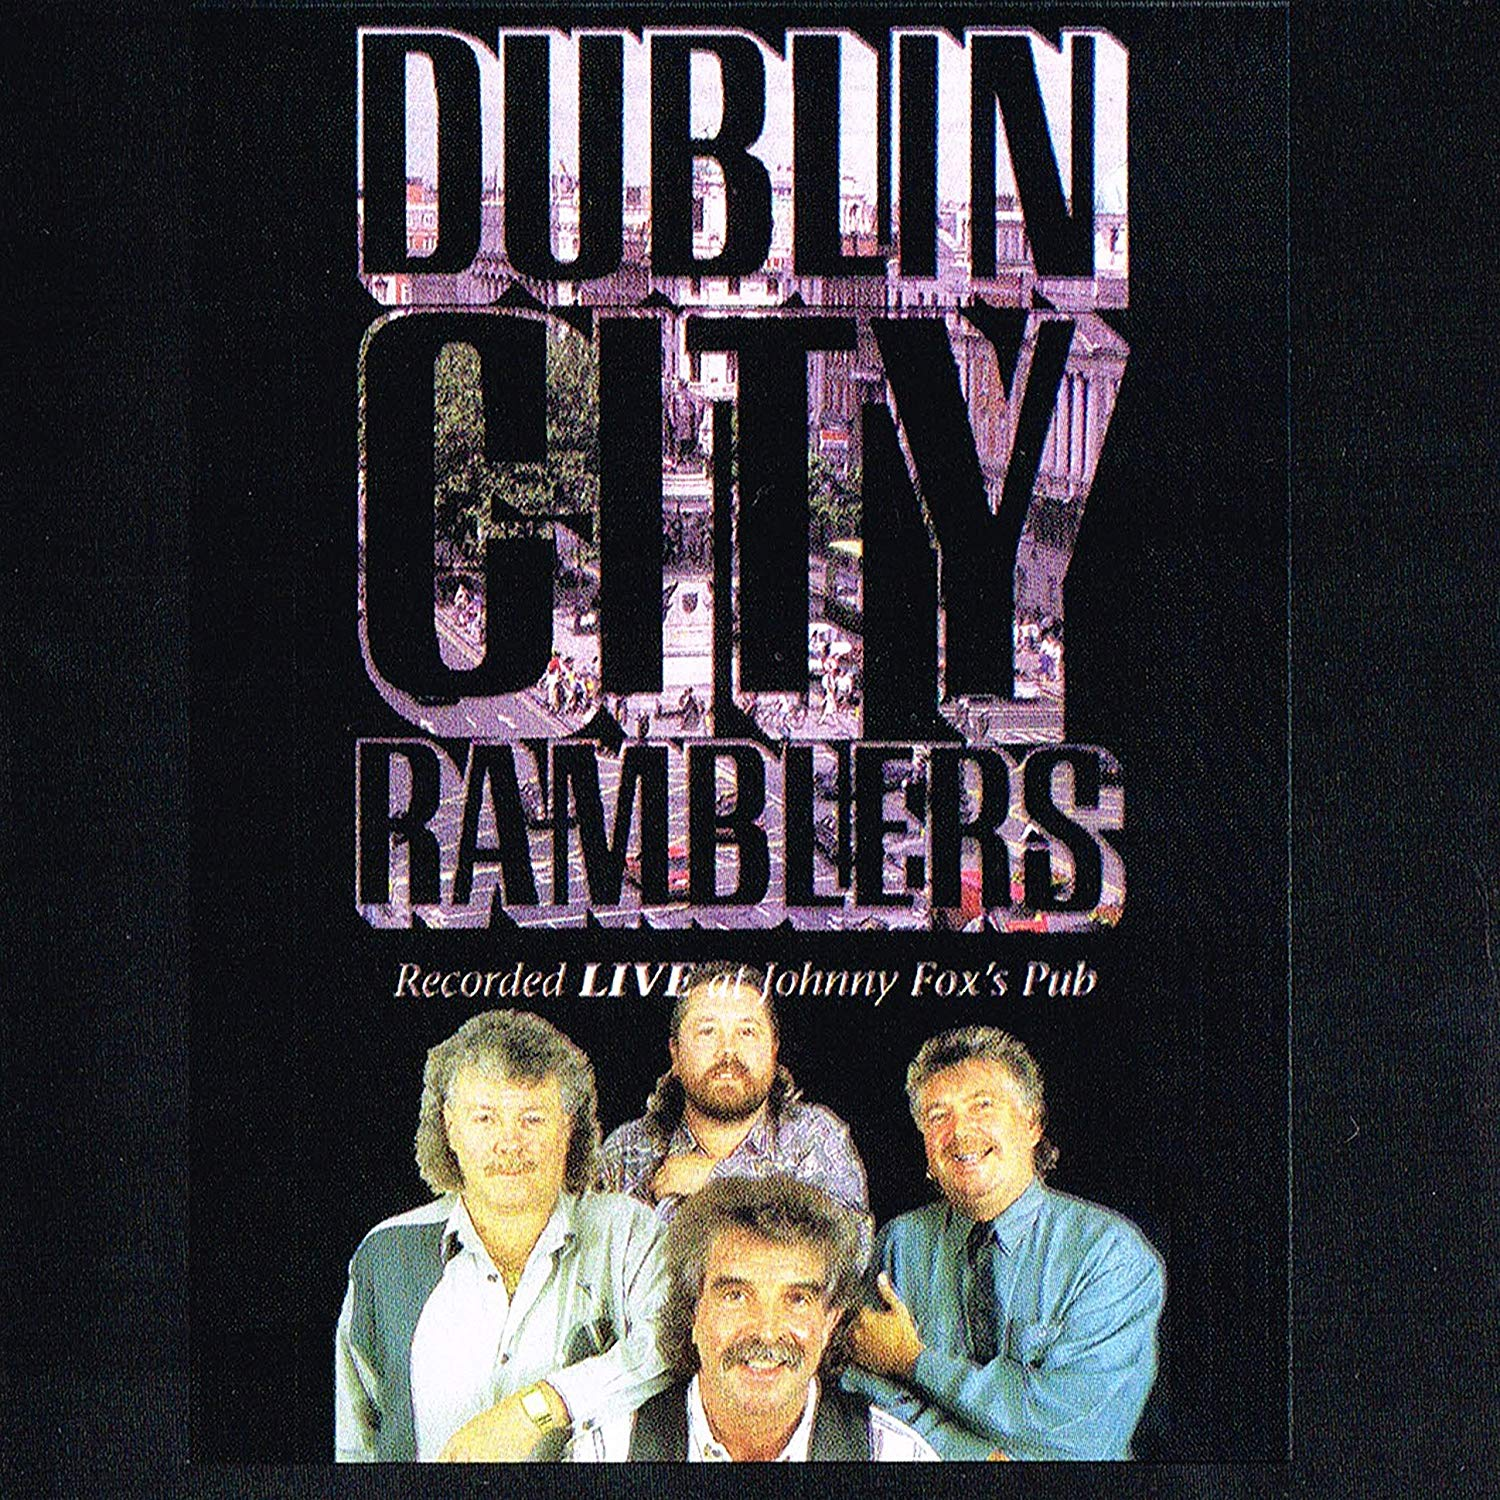 Dublin City Ramblers - Recorded Live At Johnny Fox's Pub [CD]